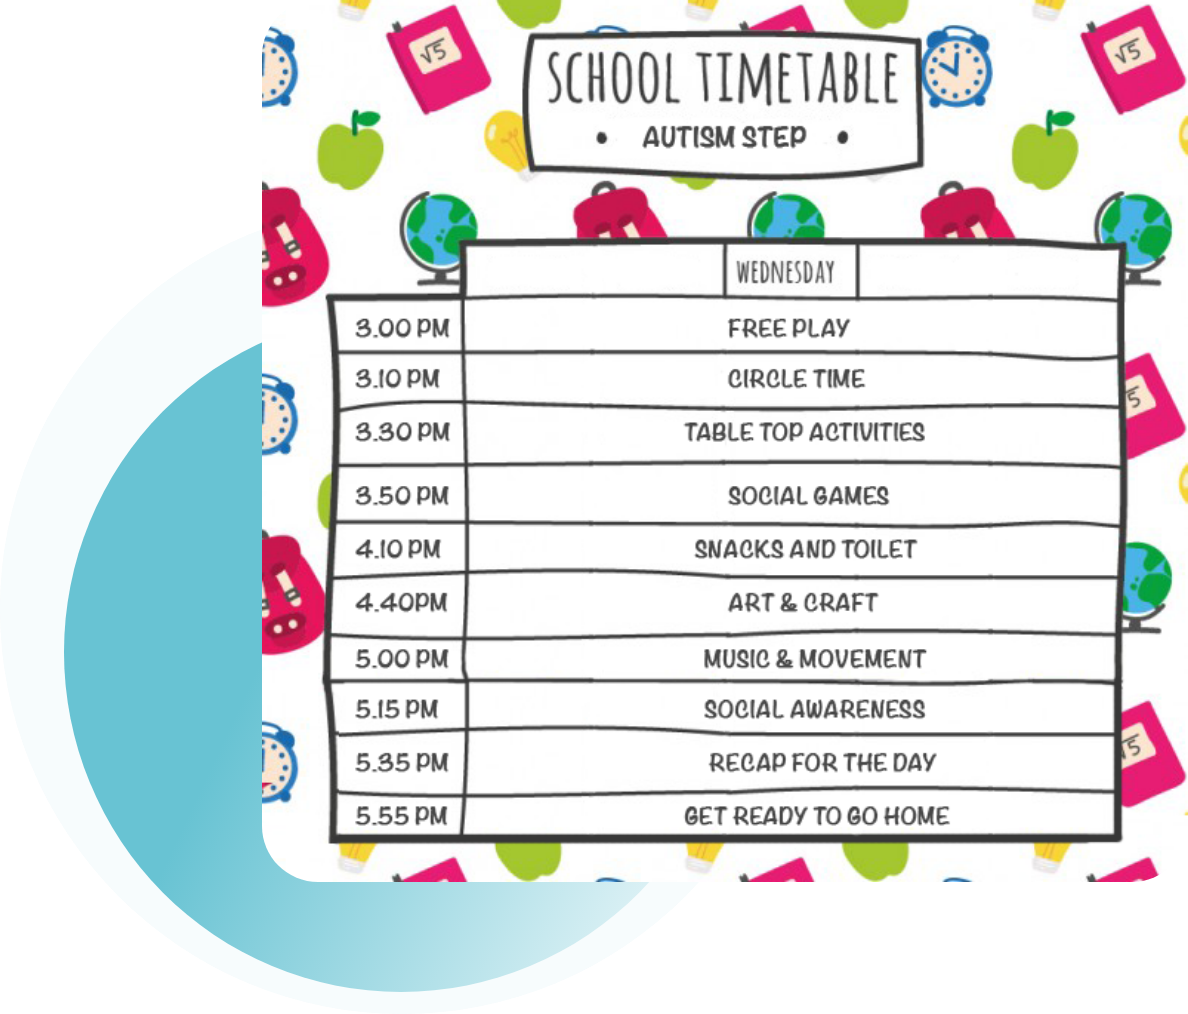 Class Sizes and Schedules - School & Social Readiness Programme - AustismSTEP